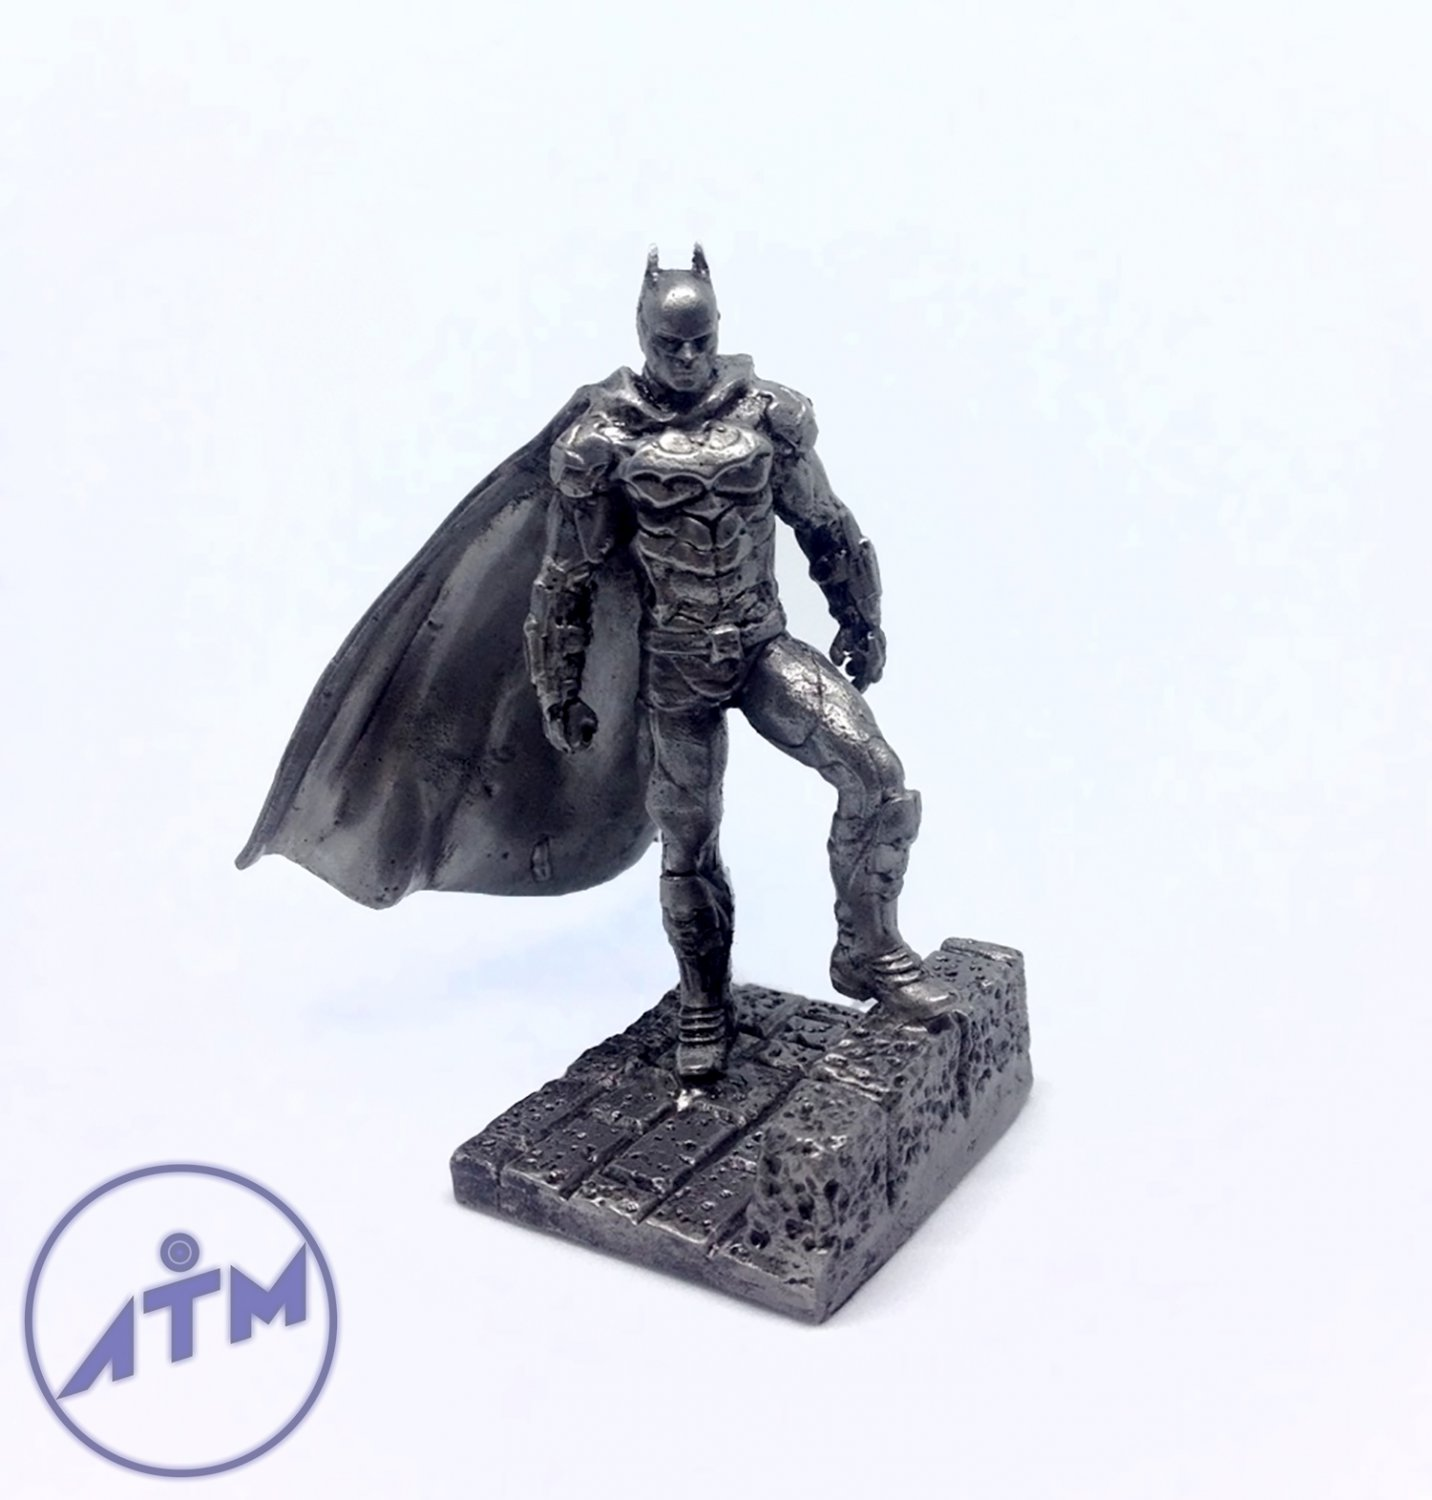 Batman metal figurine 54mm